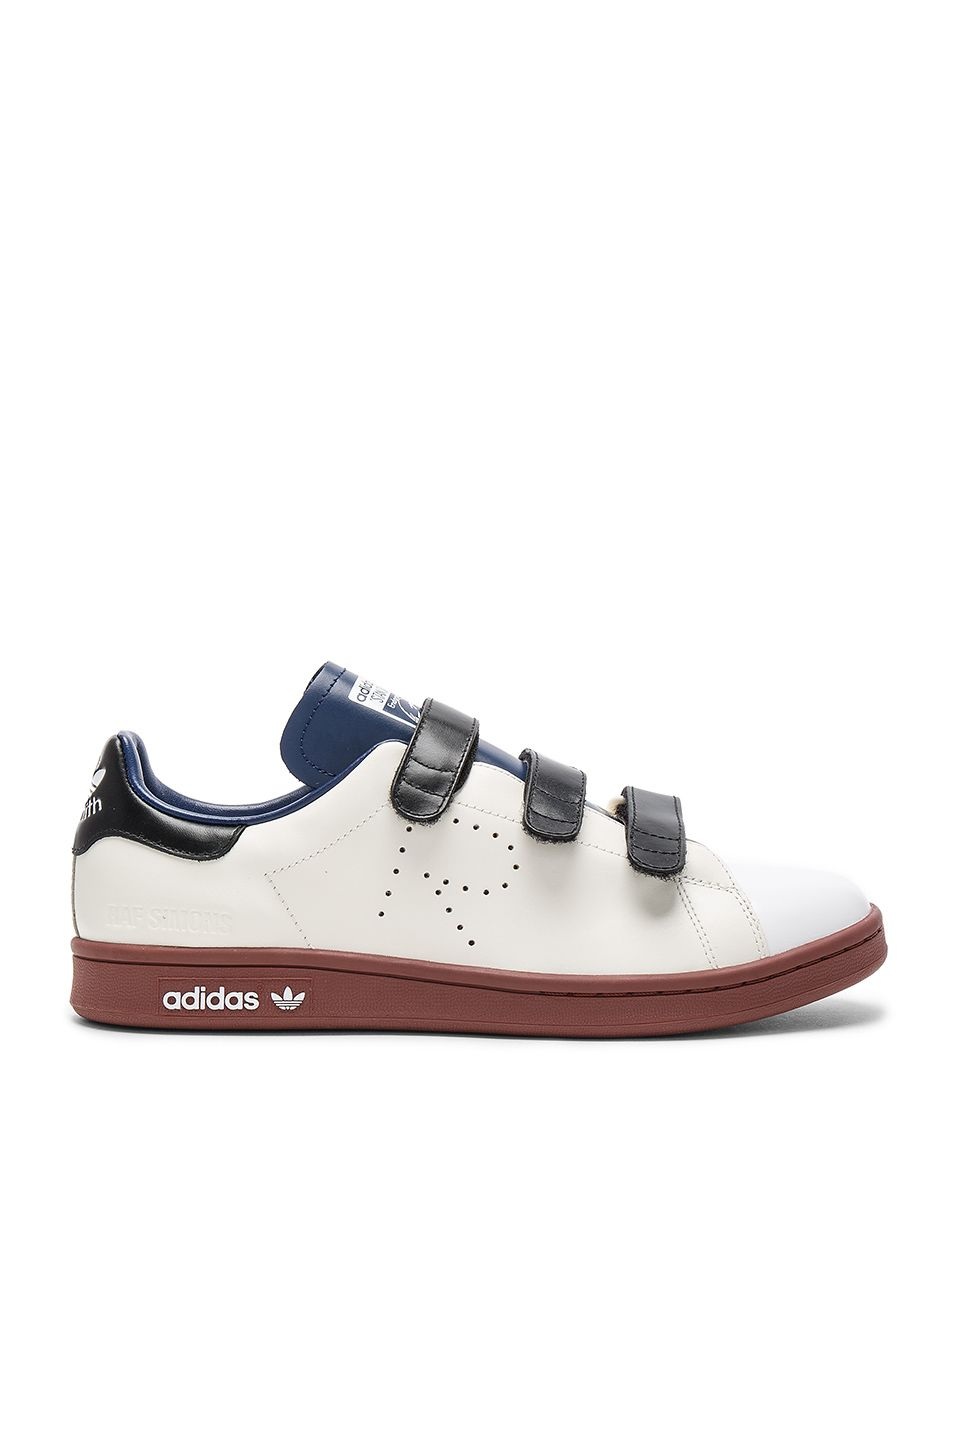 mens adidas trainers with velcro straps b06f37